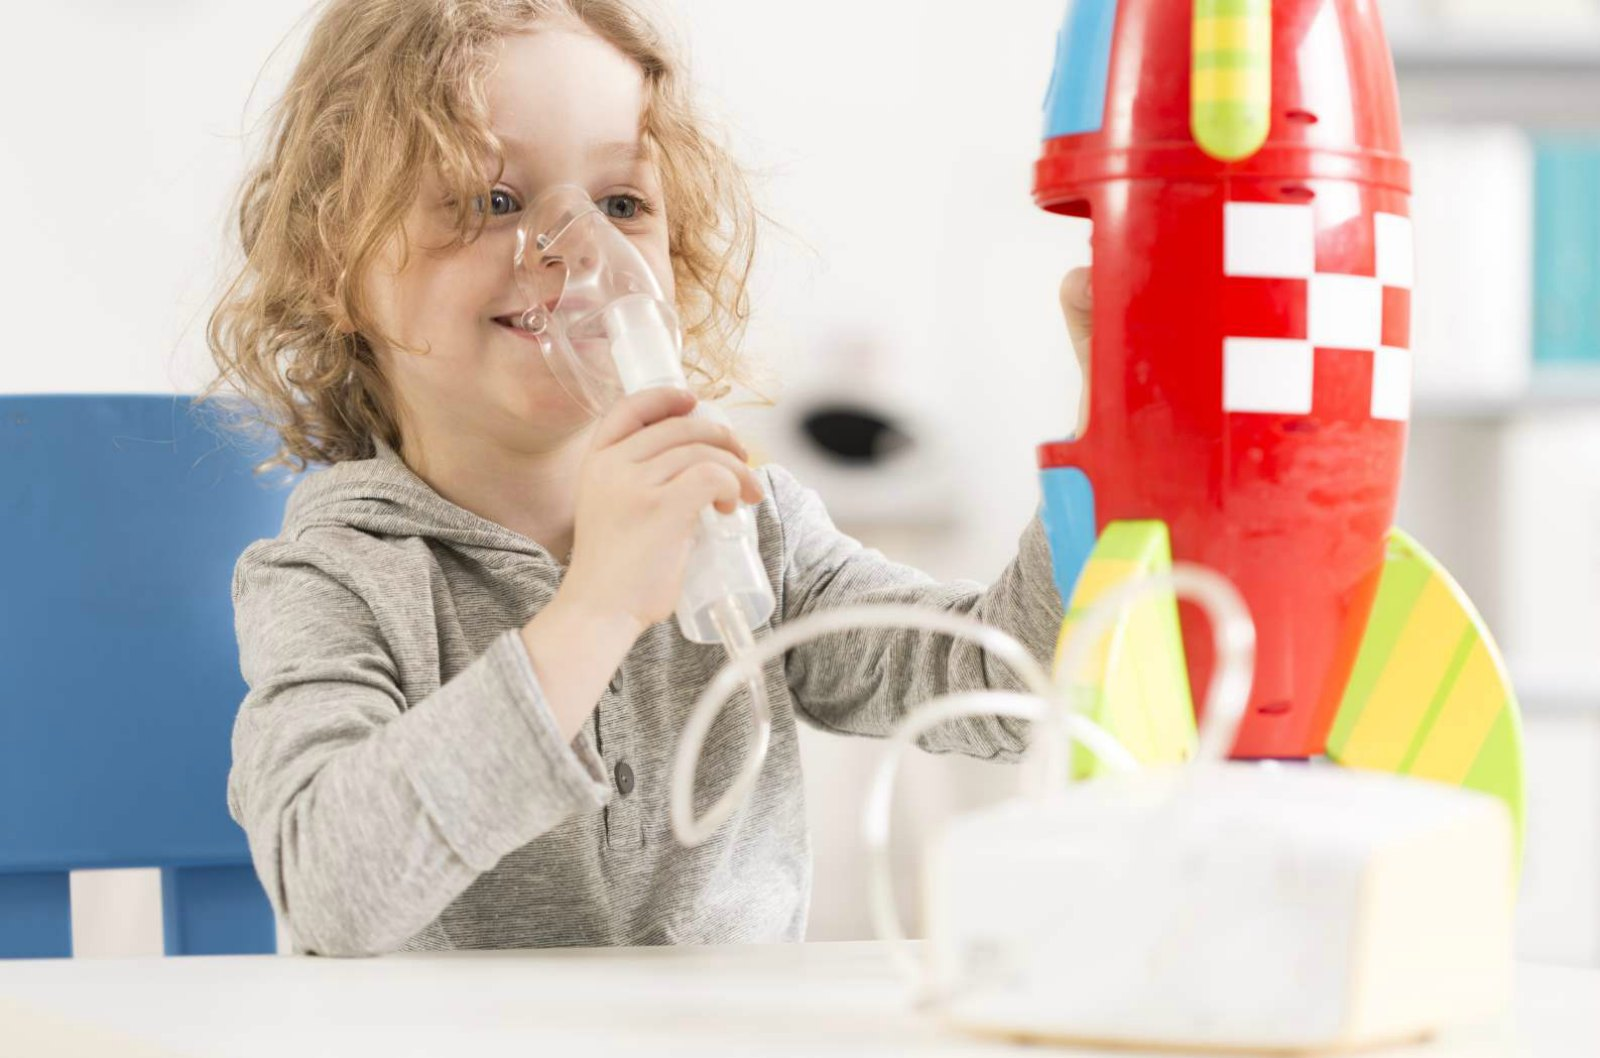 Cystic Fibrosis Discovery Hailed as a Medical Milestone